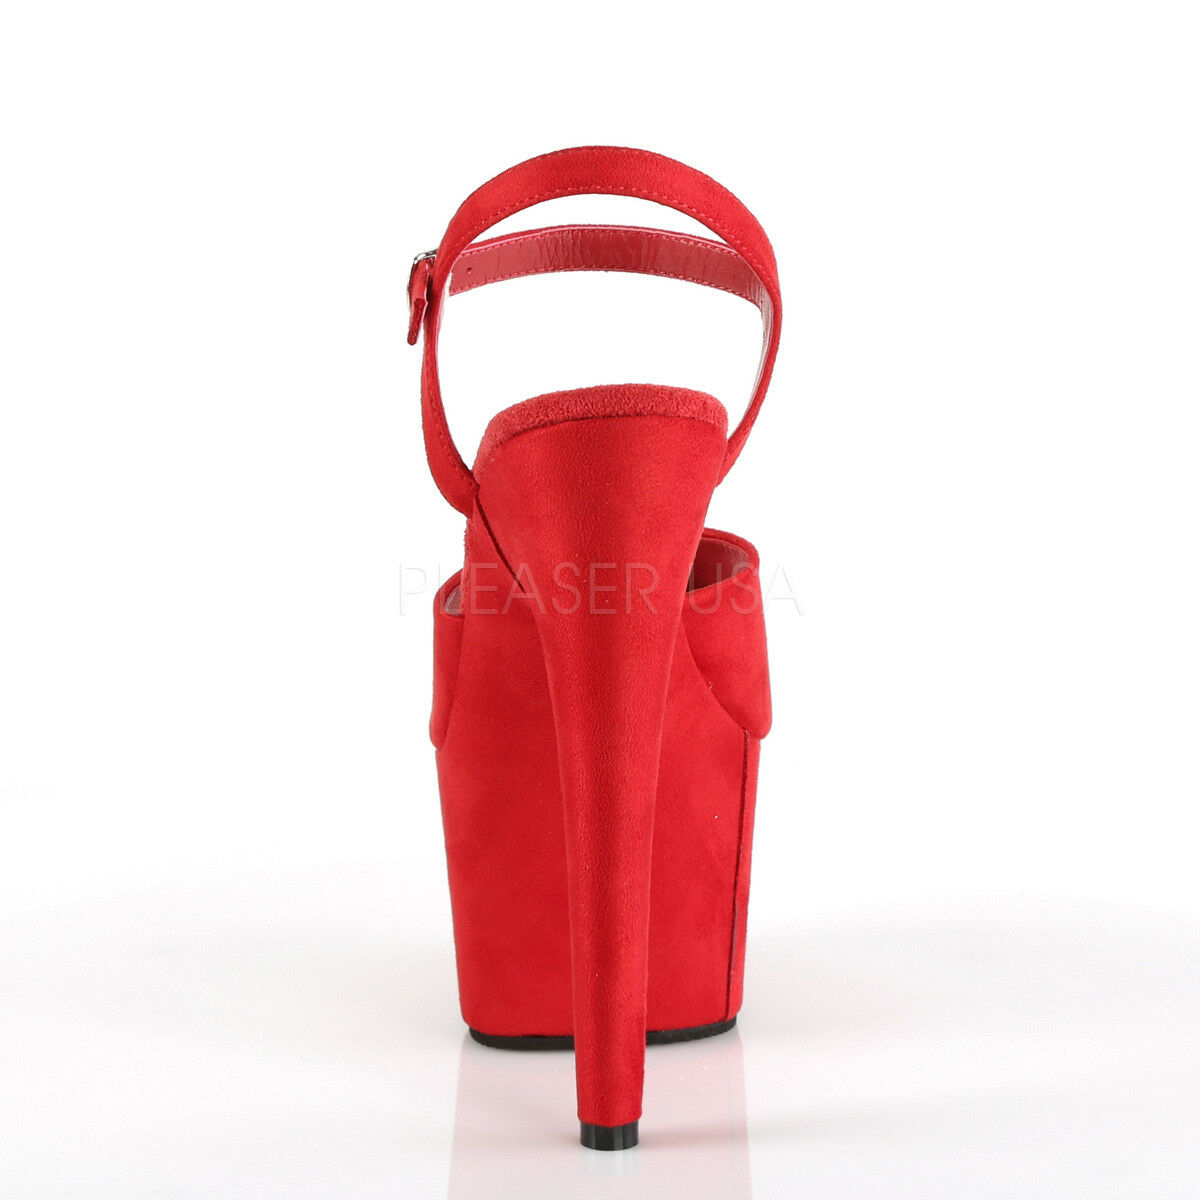 PLEASER ADORE-709F Sexy 7  Heel  Platform Platform Platform Red Faux Suede Dancer Stripper shoes e65144